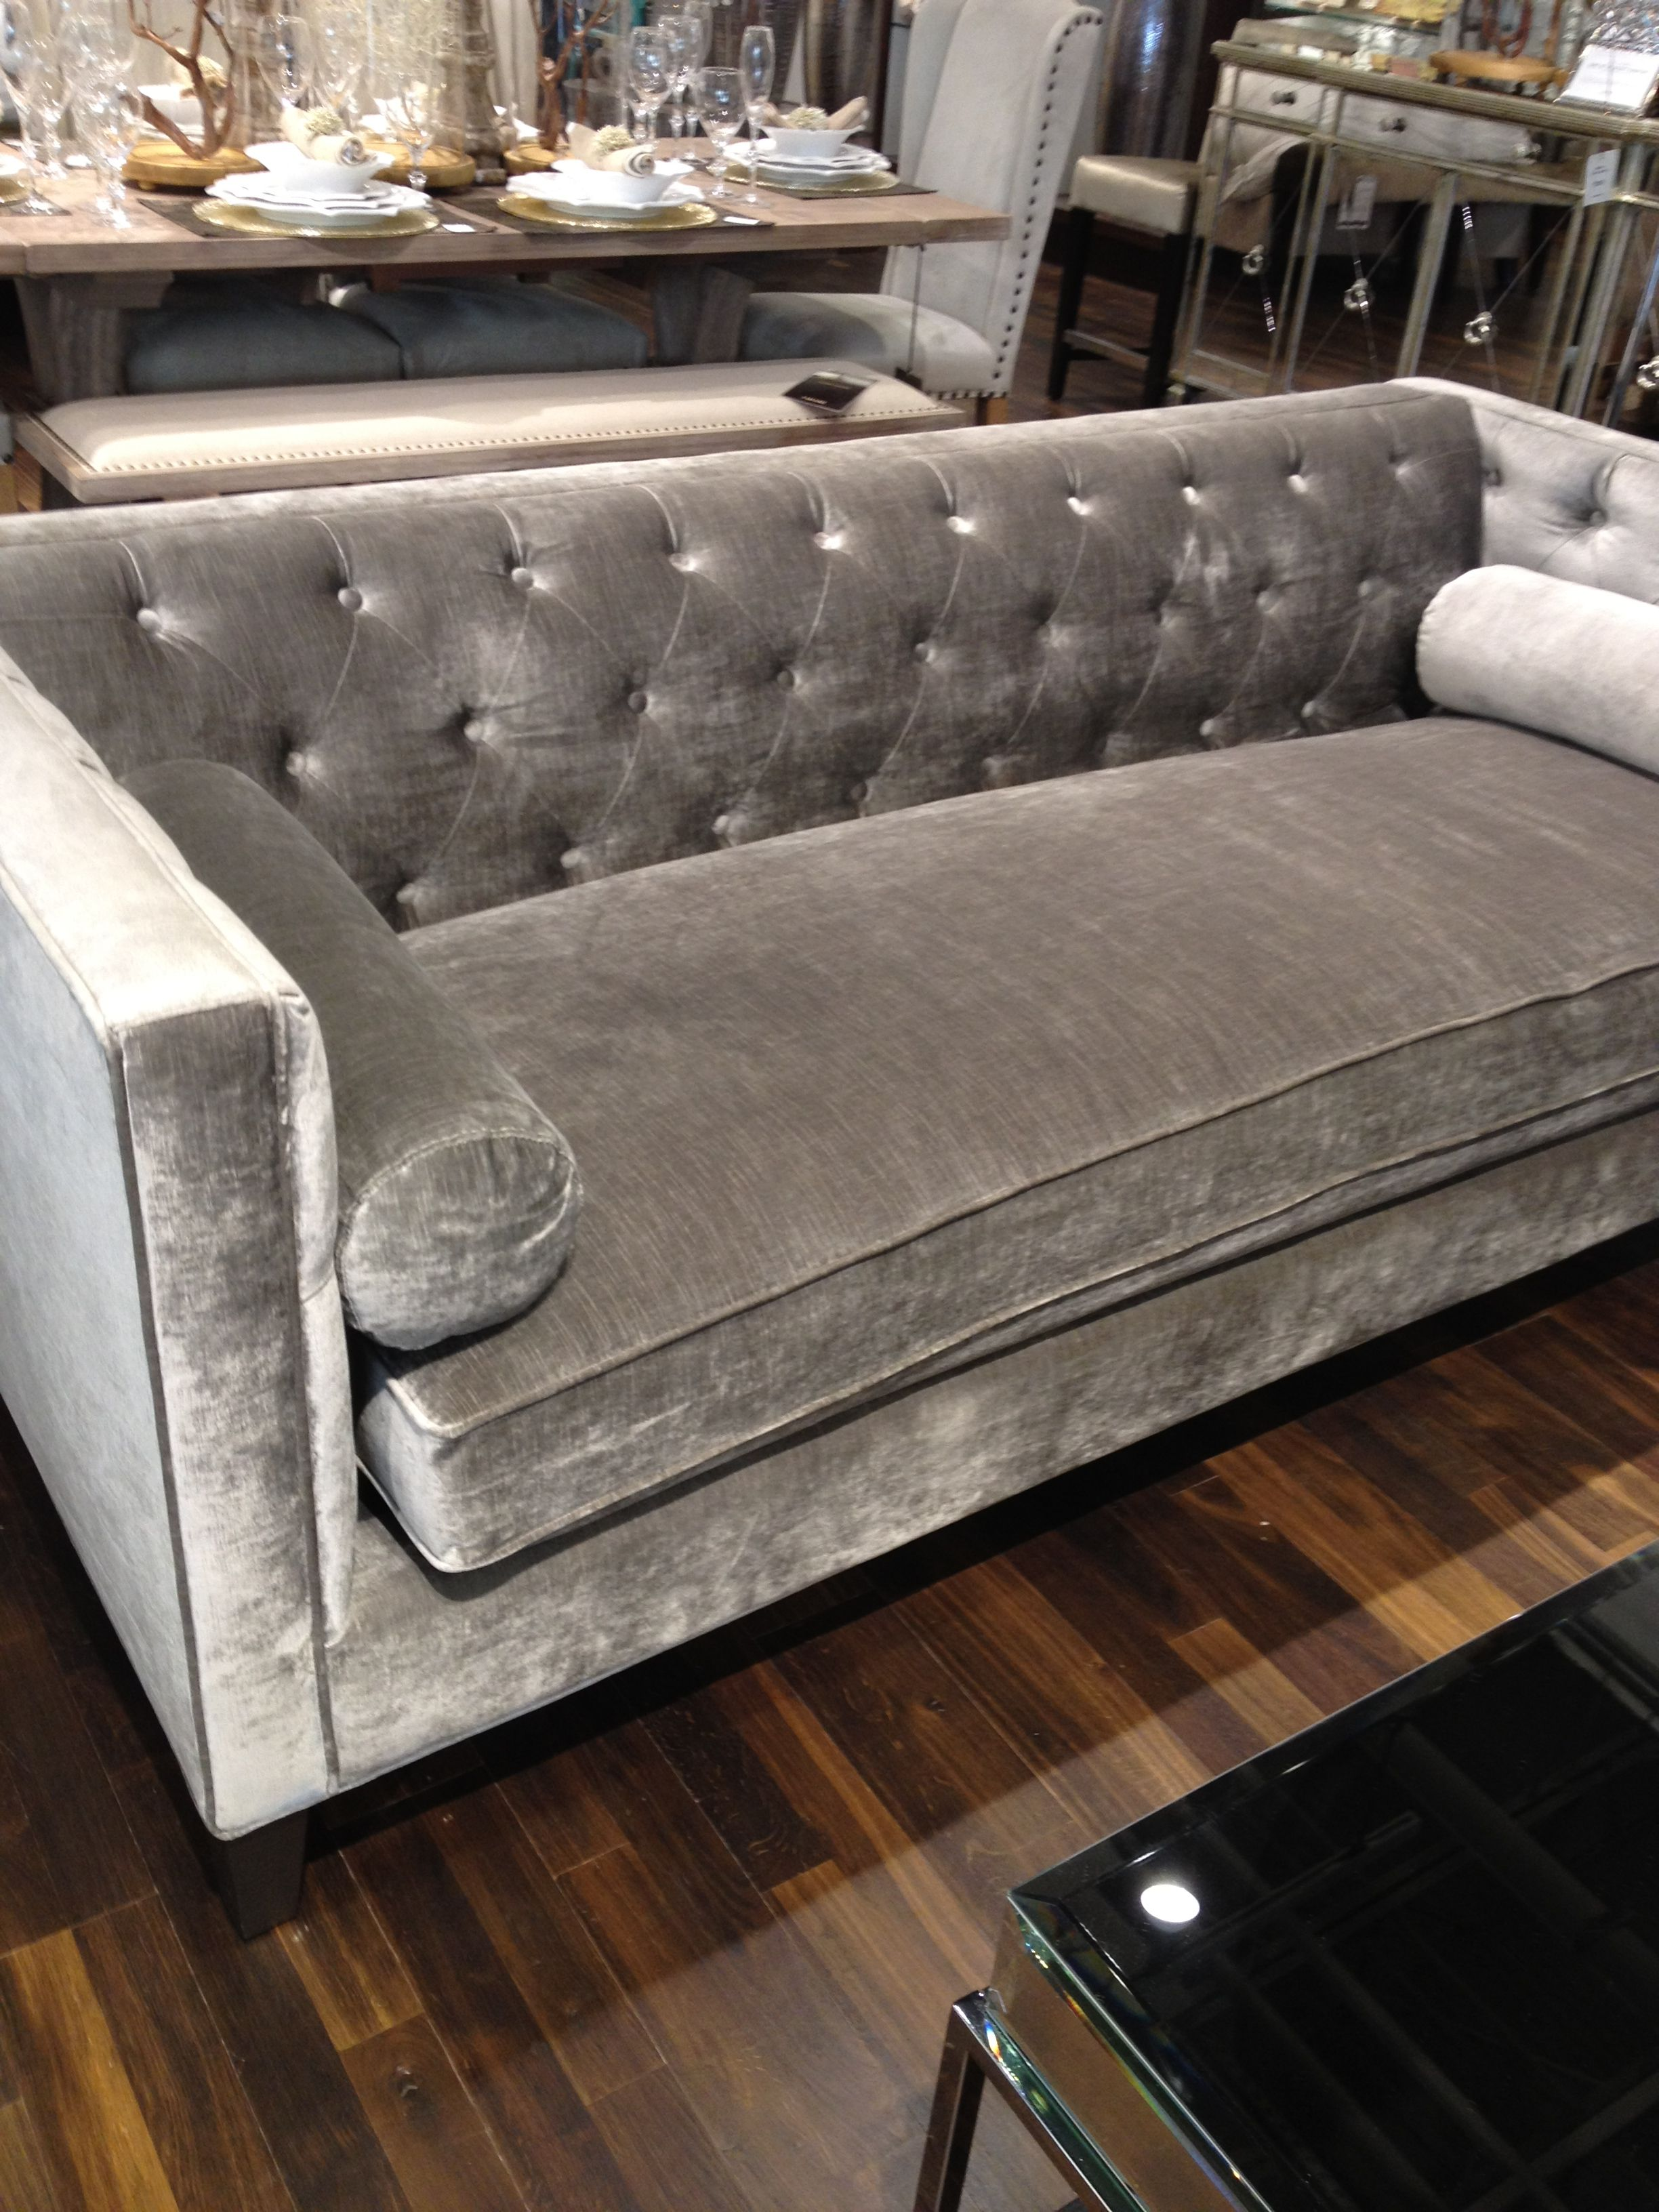 Sensational Tufted Grey Couch Sofa Design Living Room Sofa Velvet Inzonedesignstudio Interior Chair Design Inzonedesignstudiocom